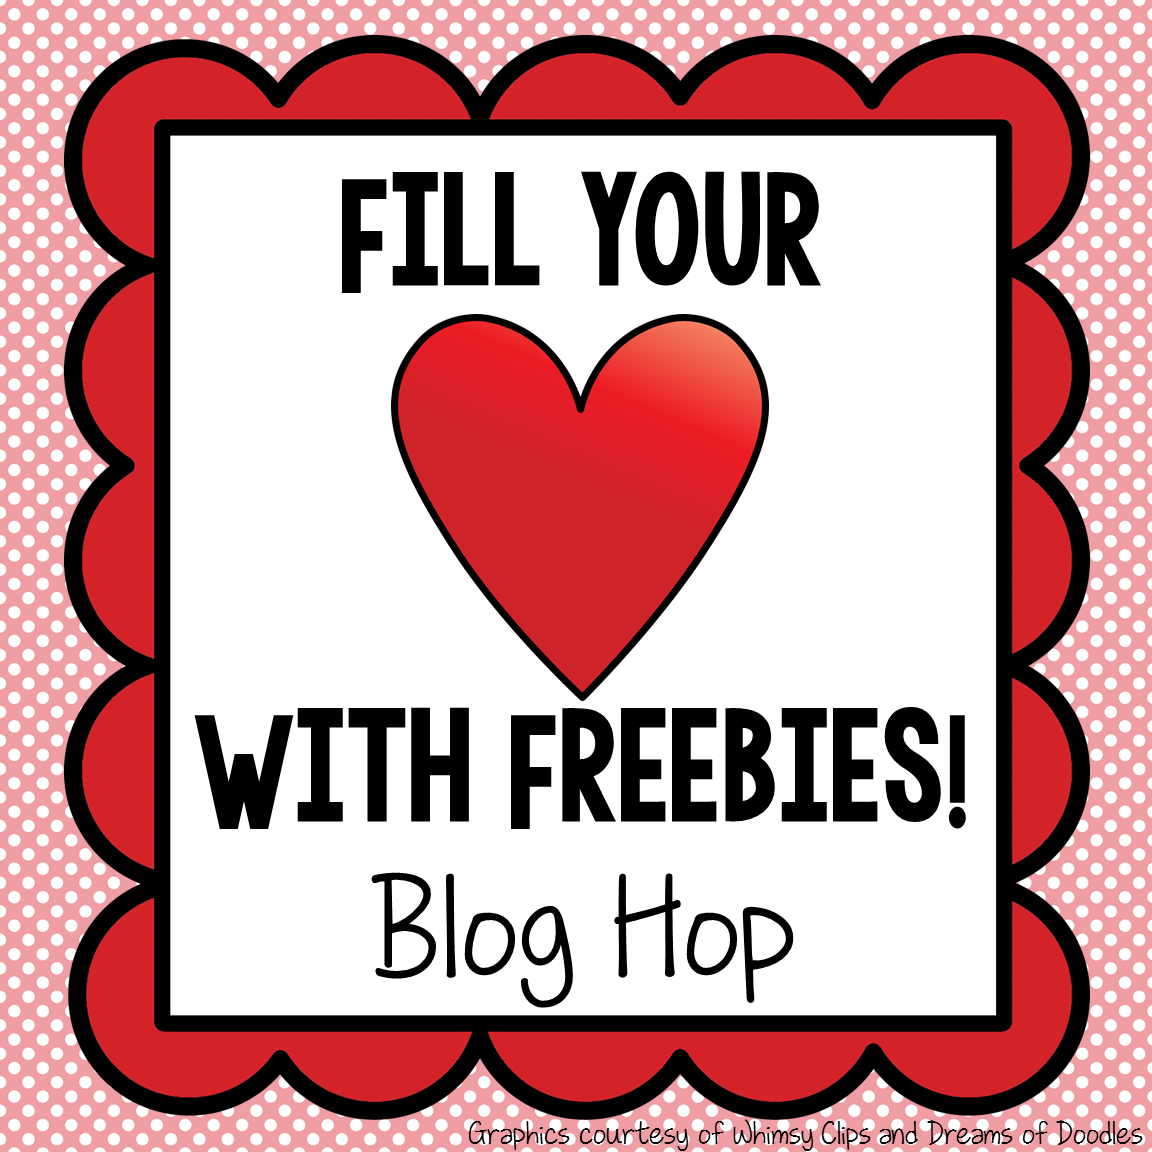 http://www.polkadotkinders.blogspot.com/2014/01/fill-your-heart-with-freebies.html